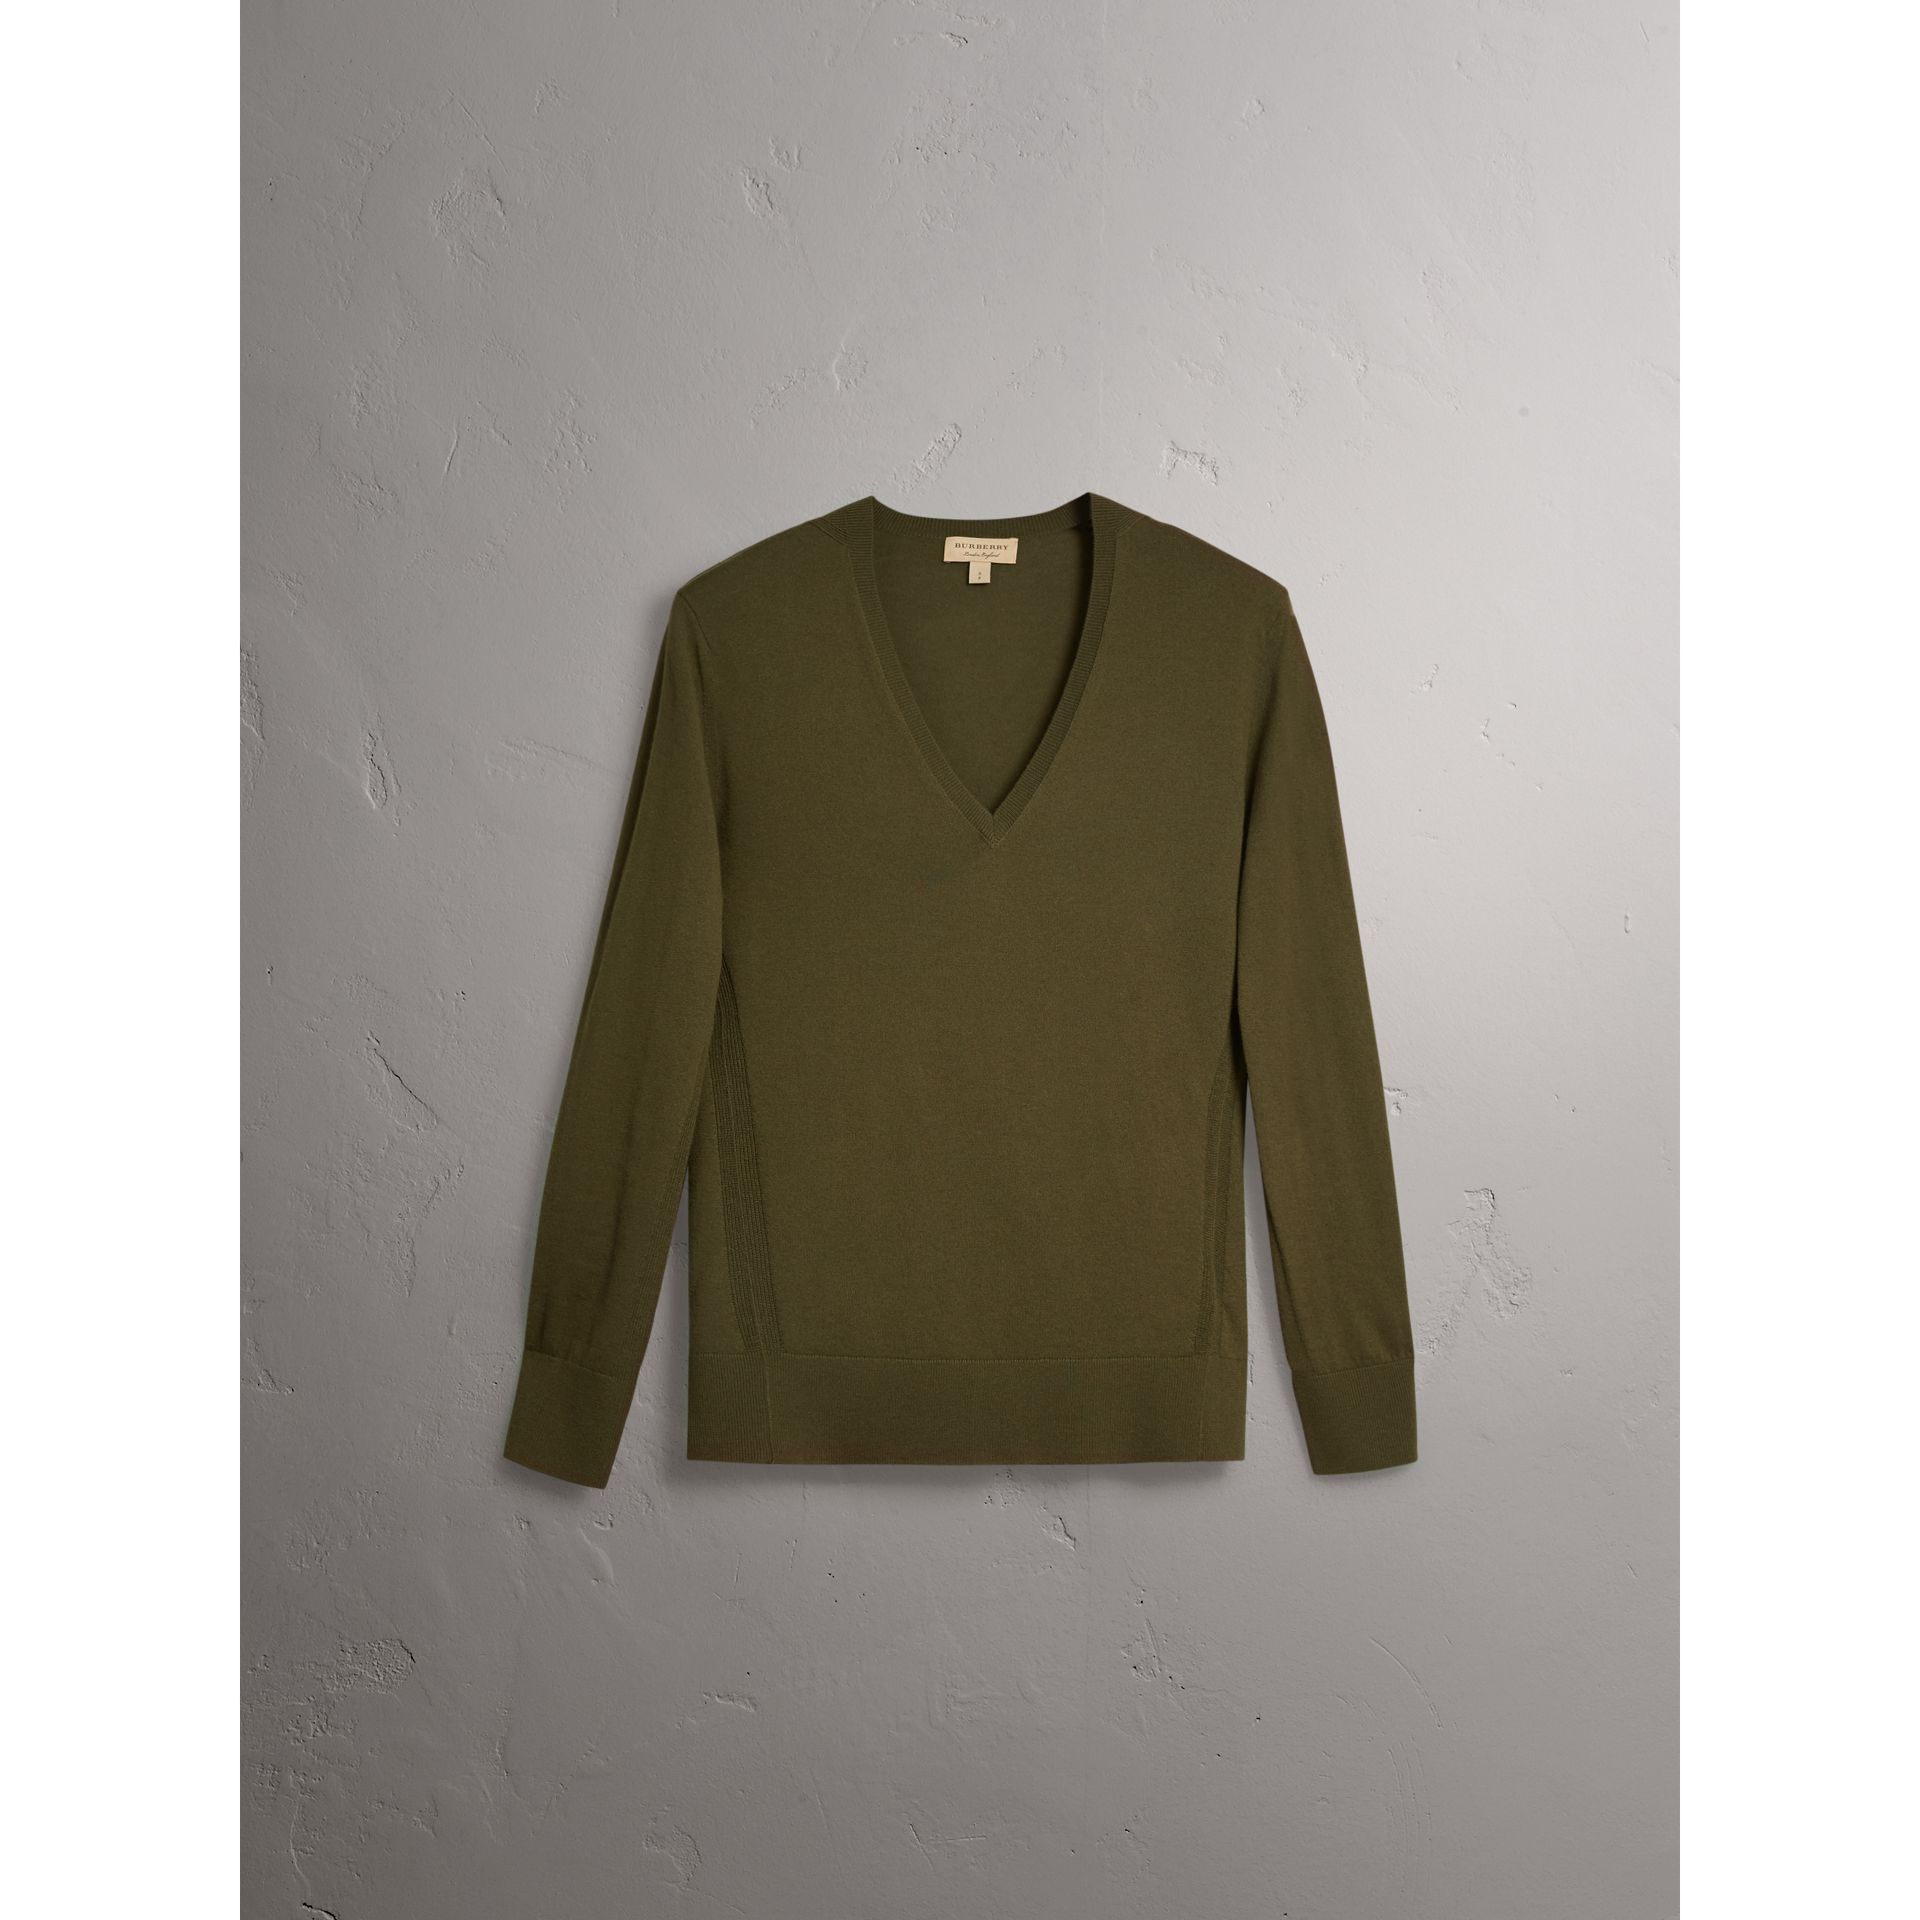 Check Detail Cashmere V-neck Sweater in Khaki Green - Women | Burberry Hong Kong - gallery image 3